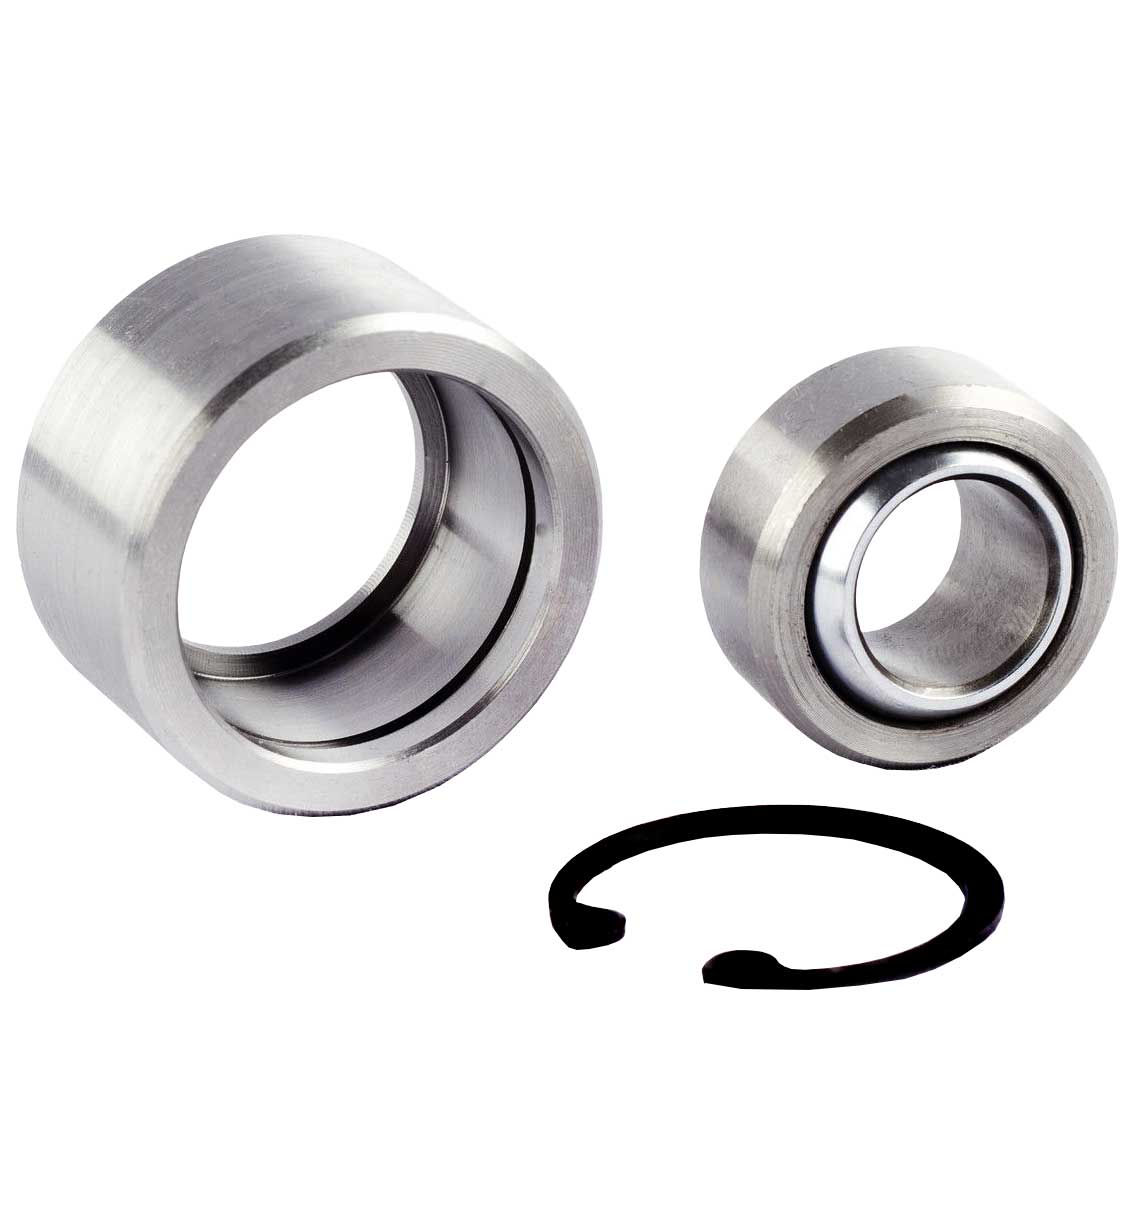 "5/8"" Spherical Bearing + 3/4"" Housing/Cup + Circlip Complete Kit"